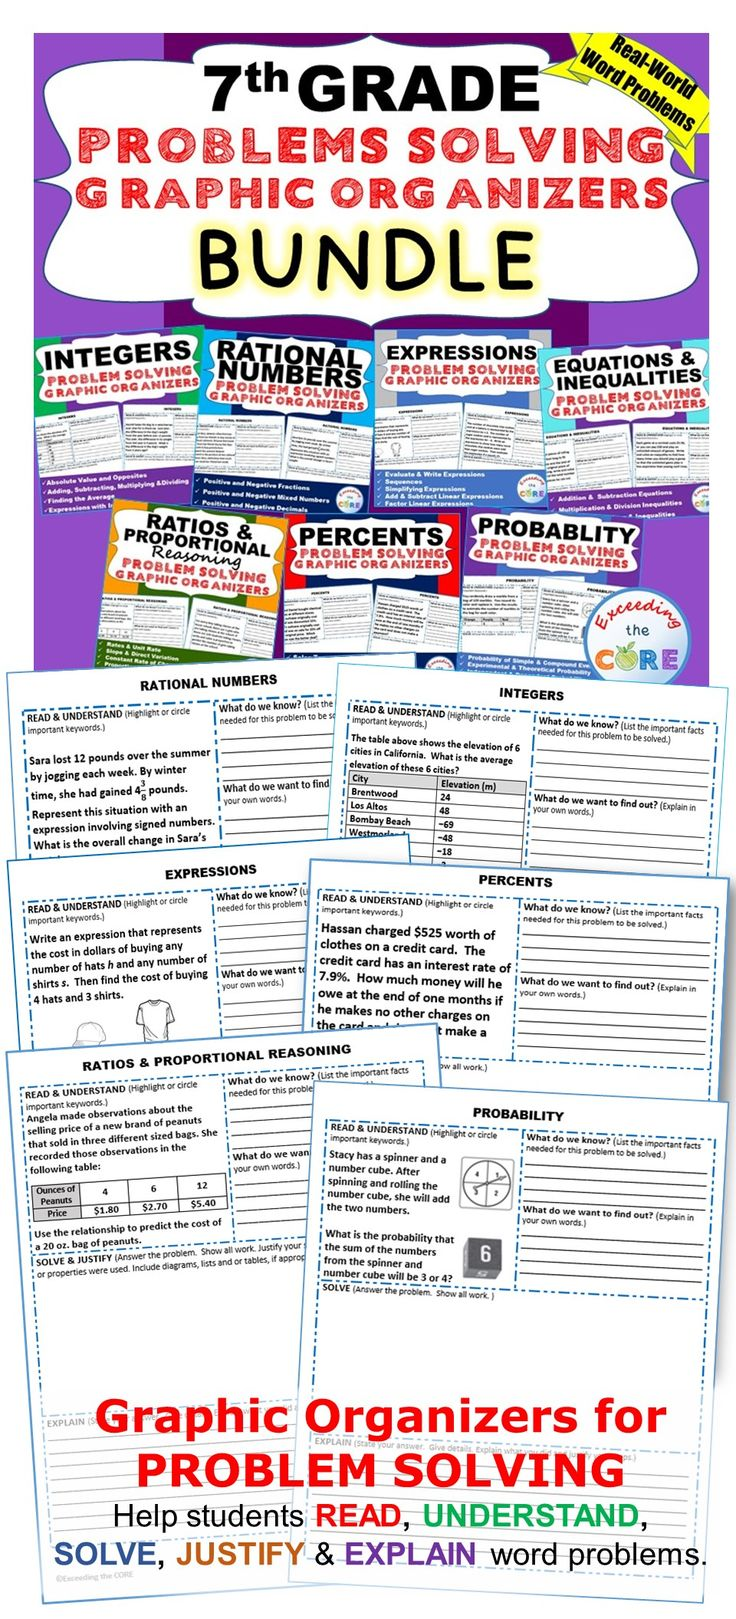 7th Grade Math Common Core WORD PROBLEMS with Graphic Organizers This BUNDLE resource includes 7 sets (69 problems) of 7th Grade real-world COMMON CORE WORD PROBLEMS that students must solve and explain using problem-solving strategies.  Topics Covered: ✔ Ratios & Proportional Reasoning  ✔ Percents  ✔ Integers  ✔ Rational Numbers   ✔ Expressions  ✔ Equations & Inequalities ✔ Probability Common Core 7NS, 7EE, 7RP, 7G, 7SP